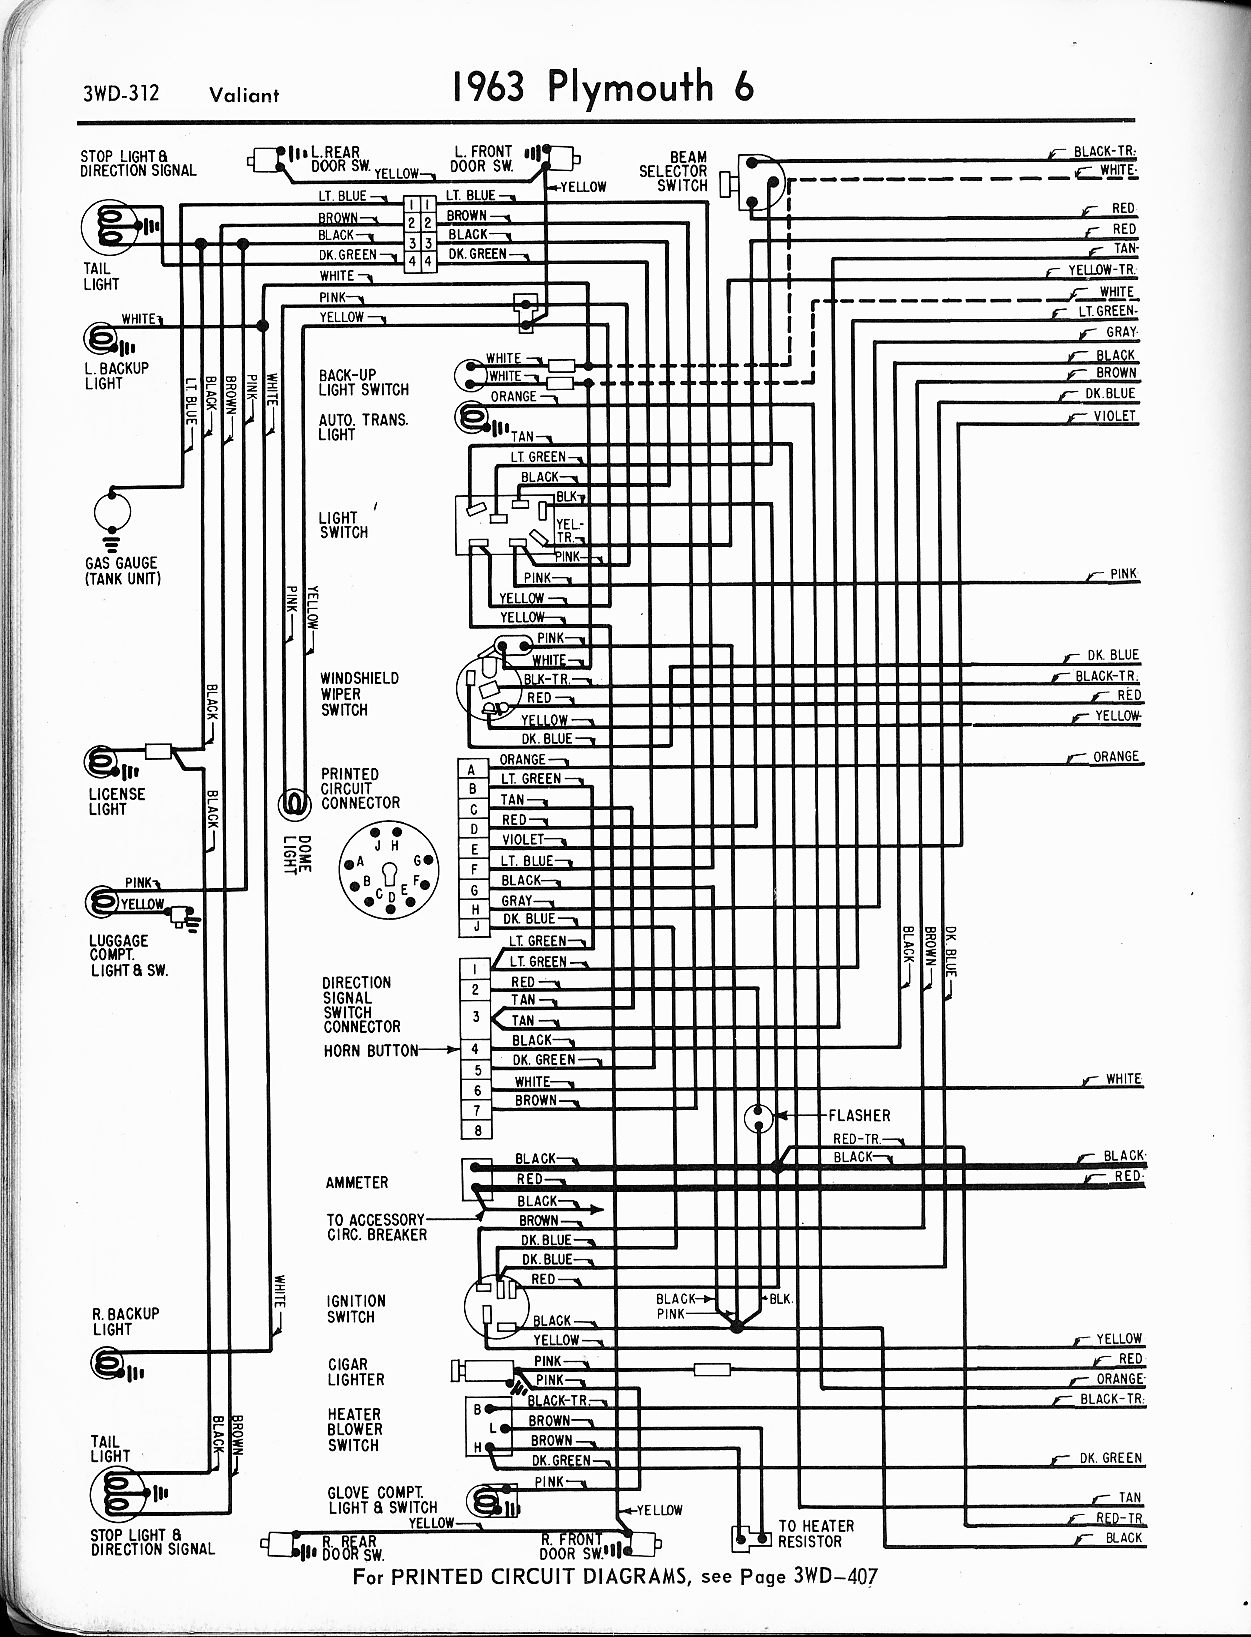 1948 Plymouth Wiring Diagram Electrical Gallery P15d24com And - Data ...